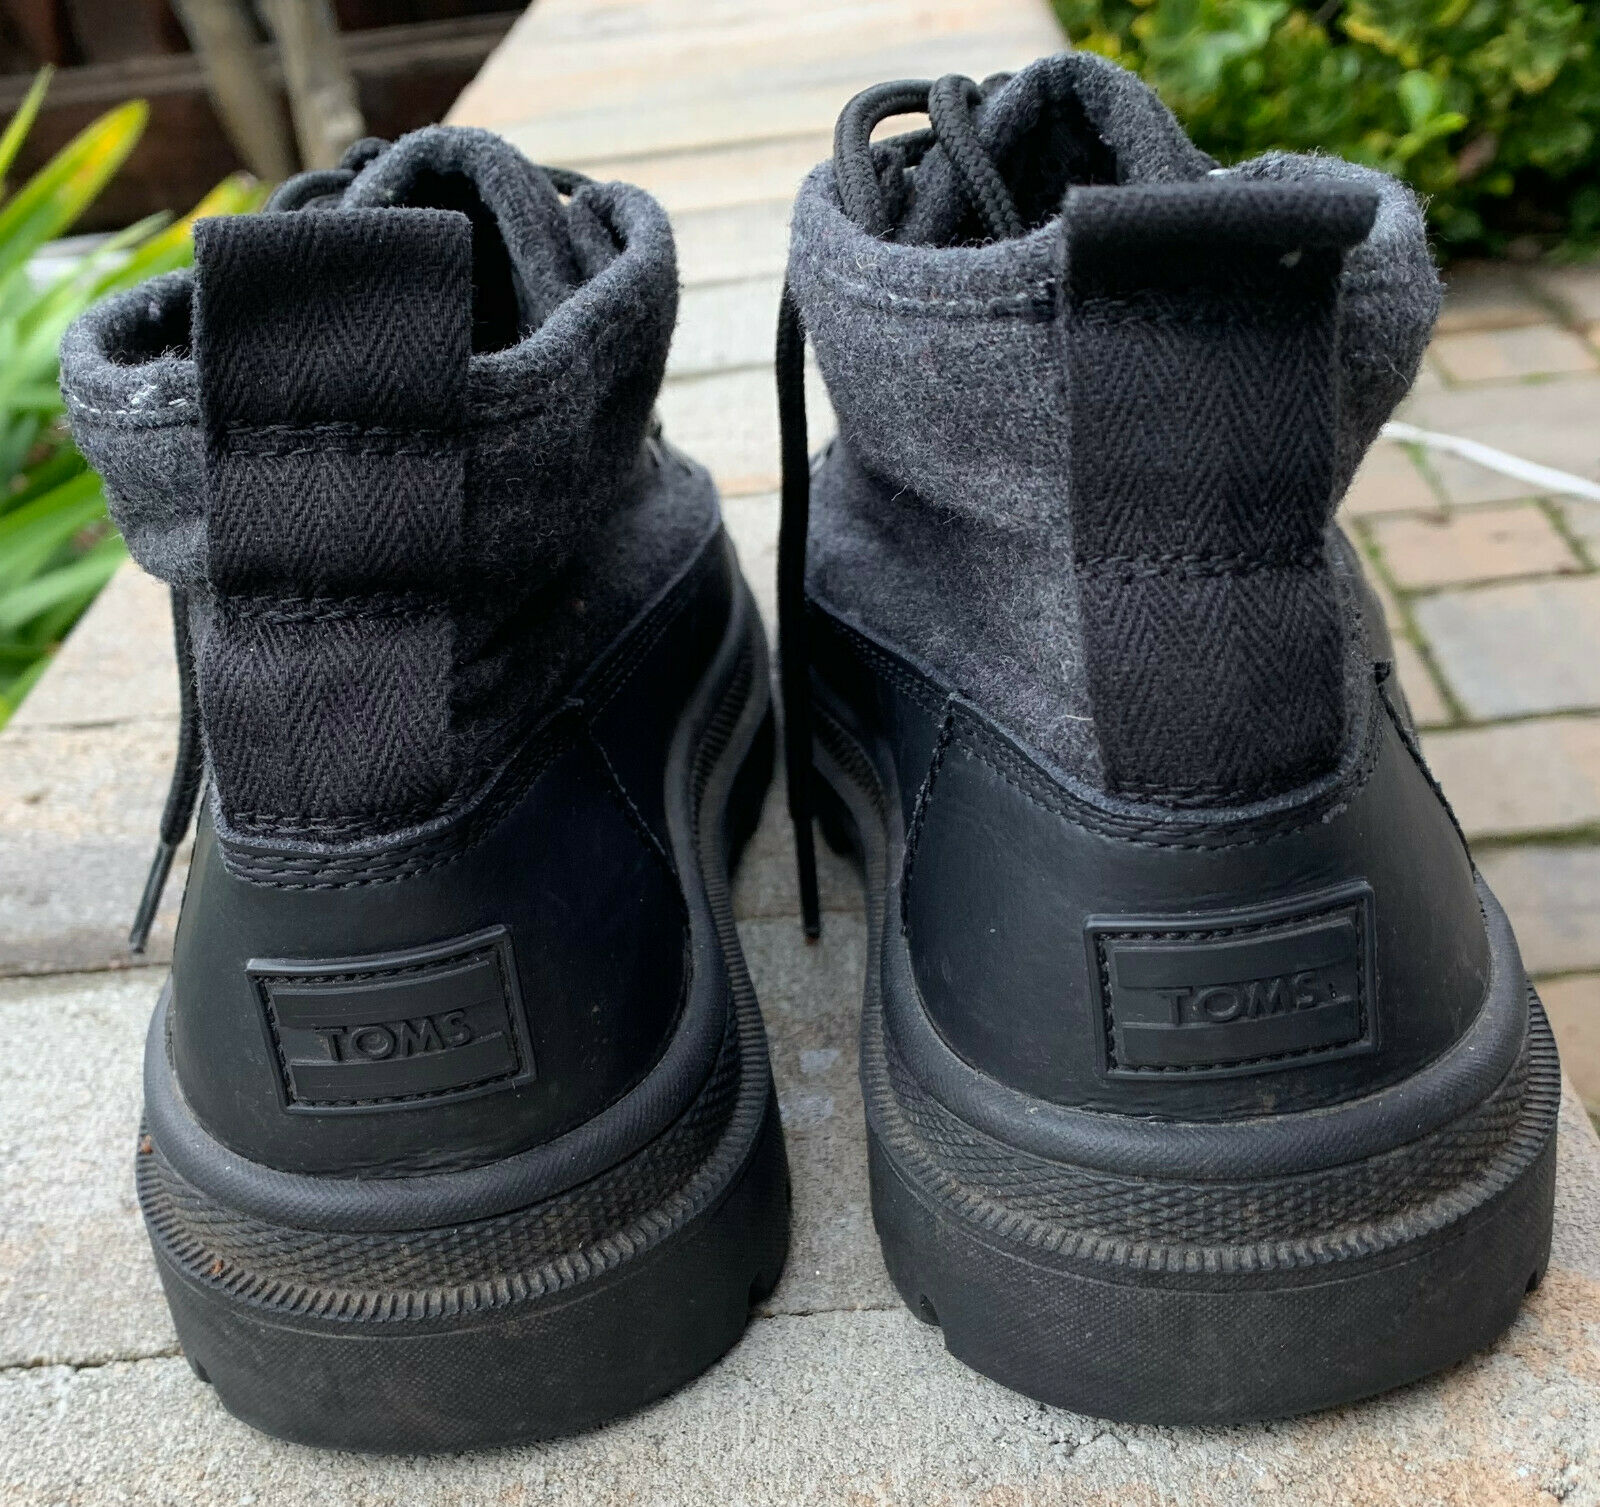 105d0020572 Toms Mens Cordova Hiking Boots Shoes Black Wool Leather US 9 | eBay